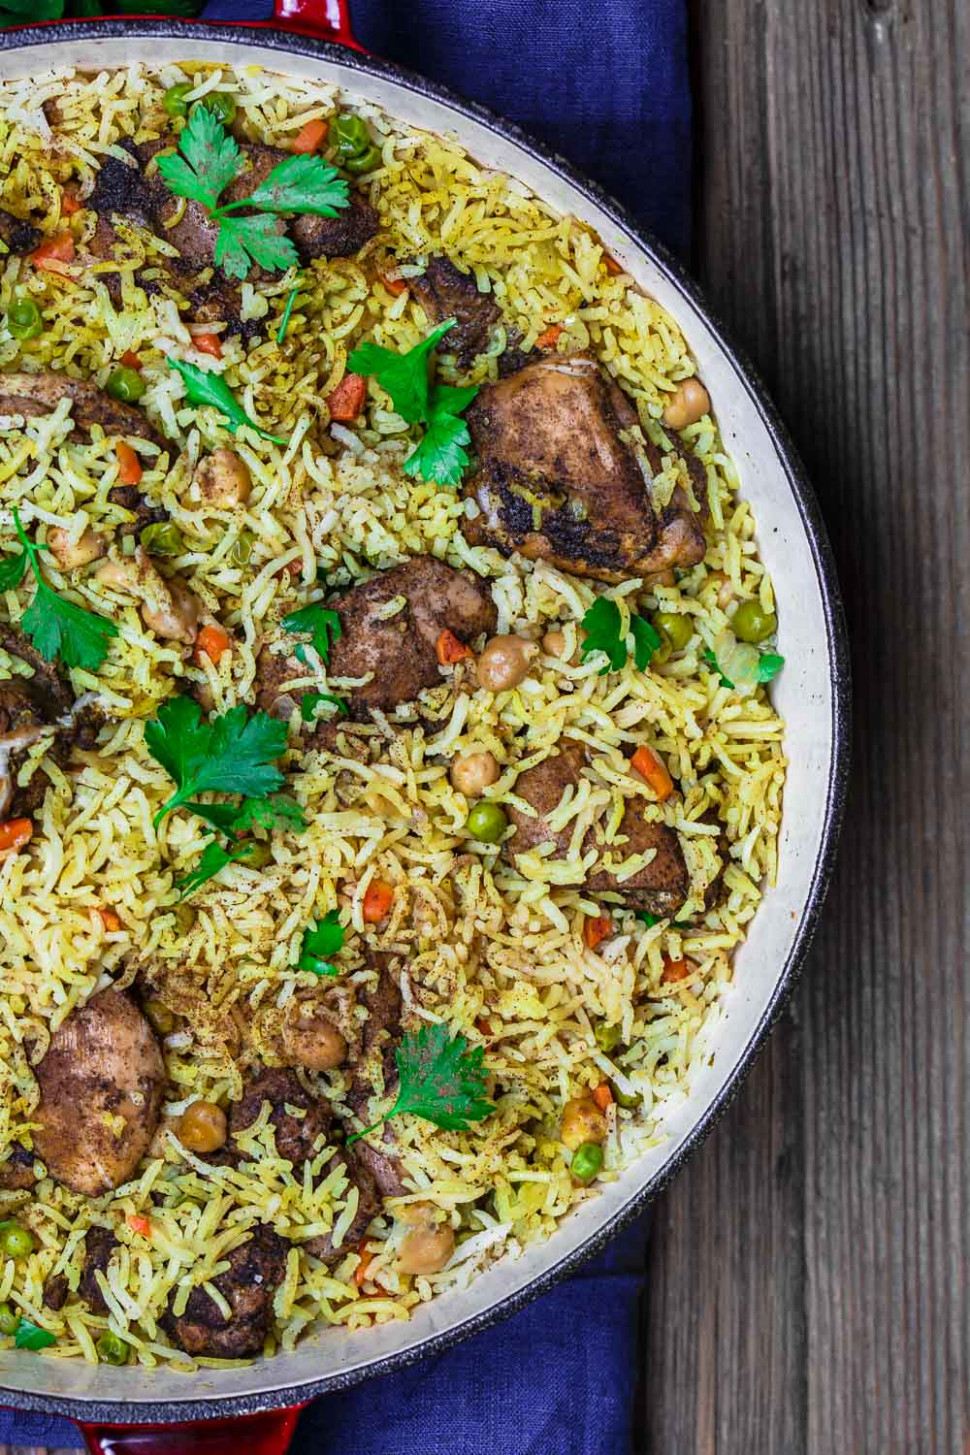 Middle Eastern Chicken And Rice - Tasty Recipes Chicken